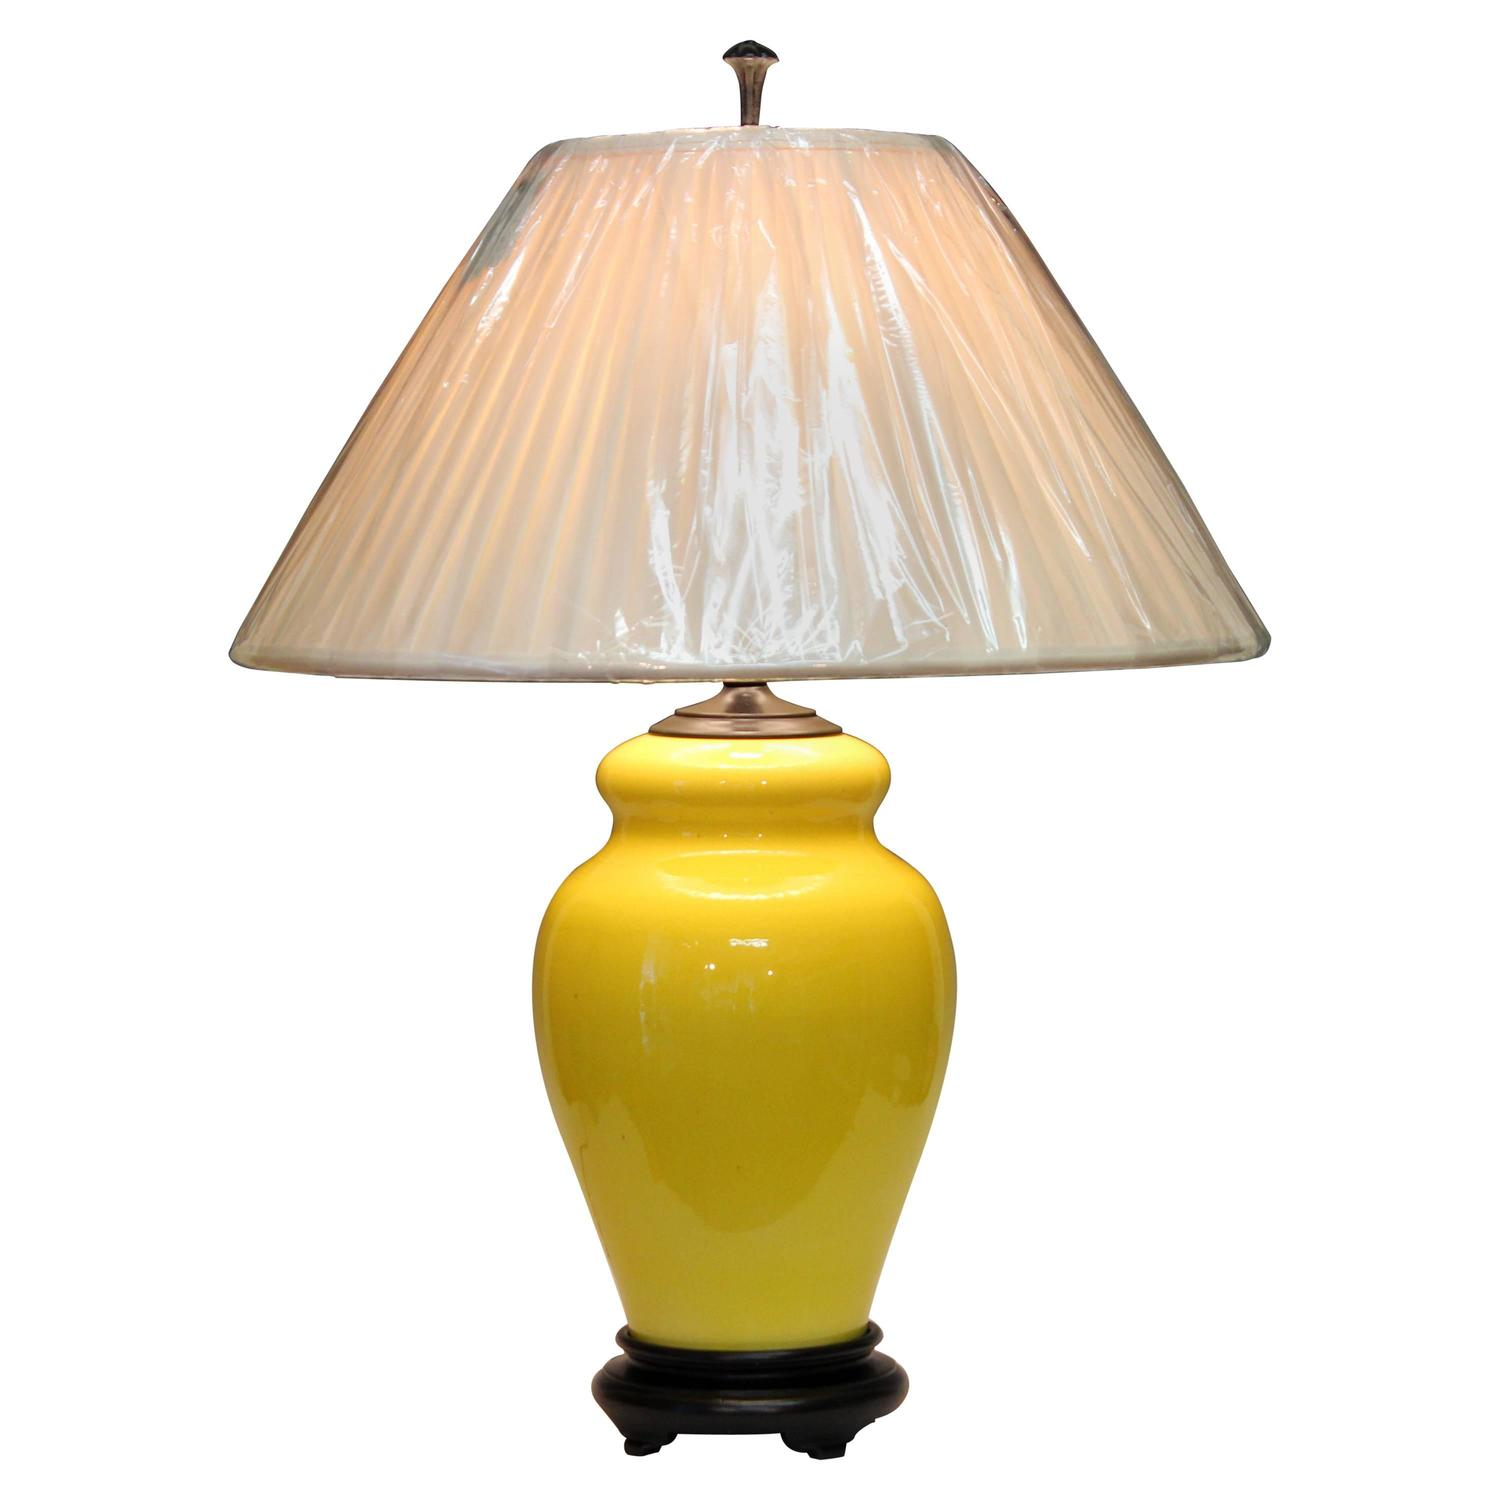 crackle yellow italian pottery raymor gourd lamp for sale at 1stdibs. Black Bedroom Furniture Sets. Home Design Ideas